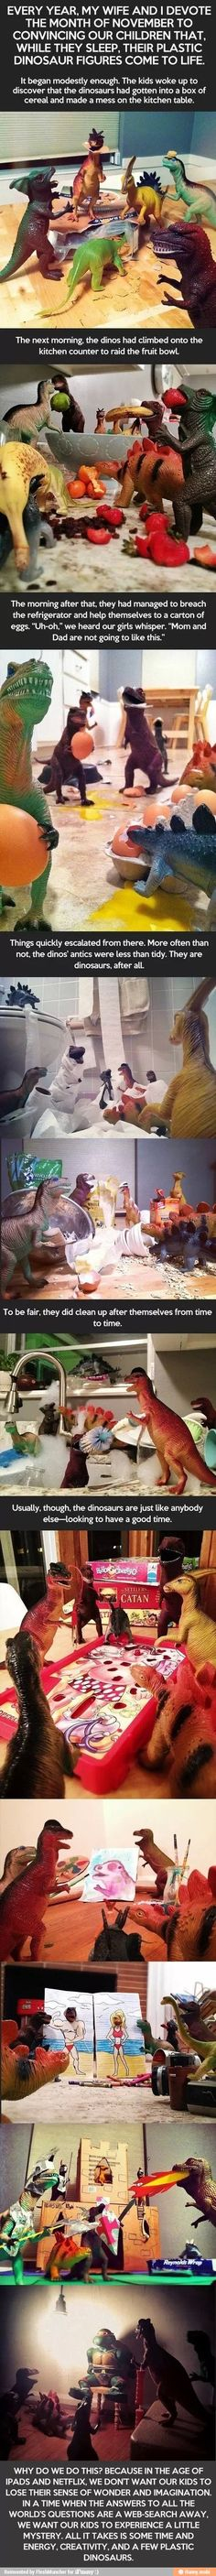 Parents spend a month setting up their kids you dinosaurs to look like they came alive at night. Such a great idea, I'm totally doing this :)